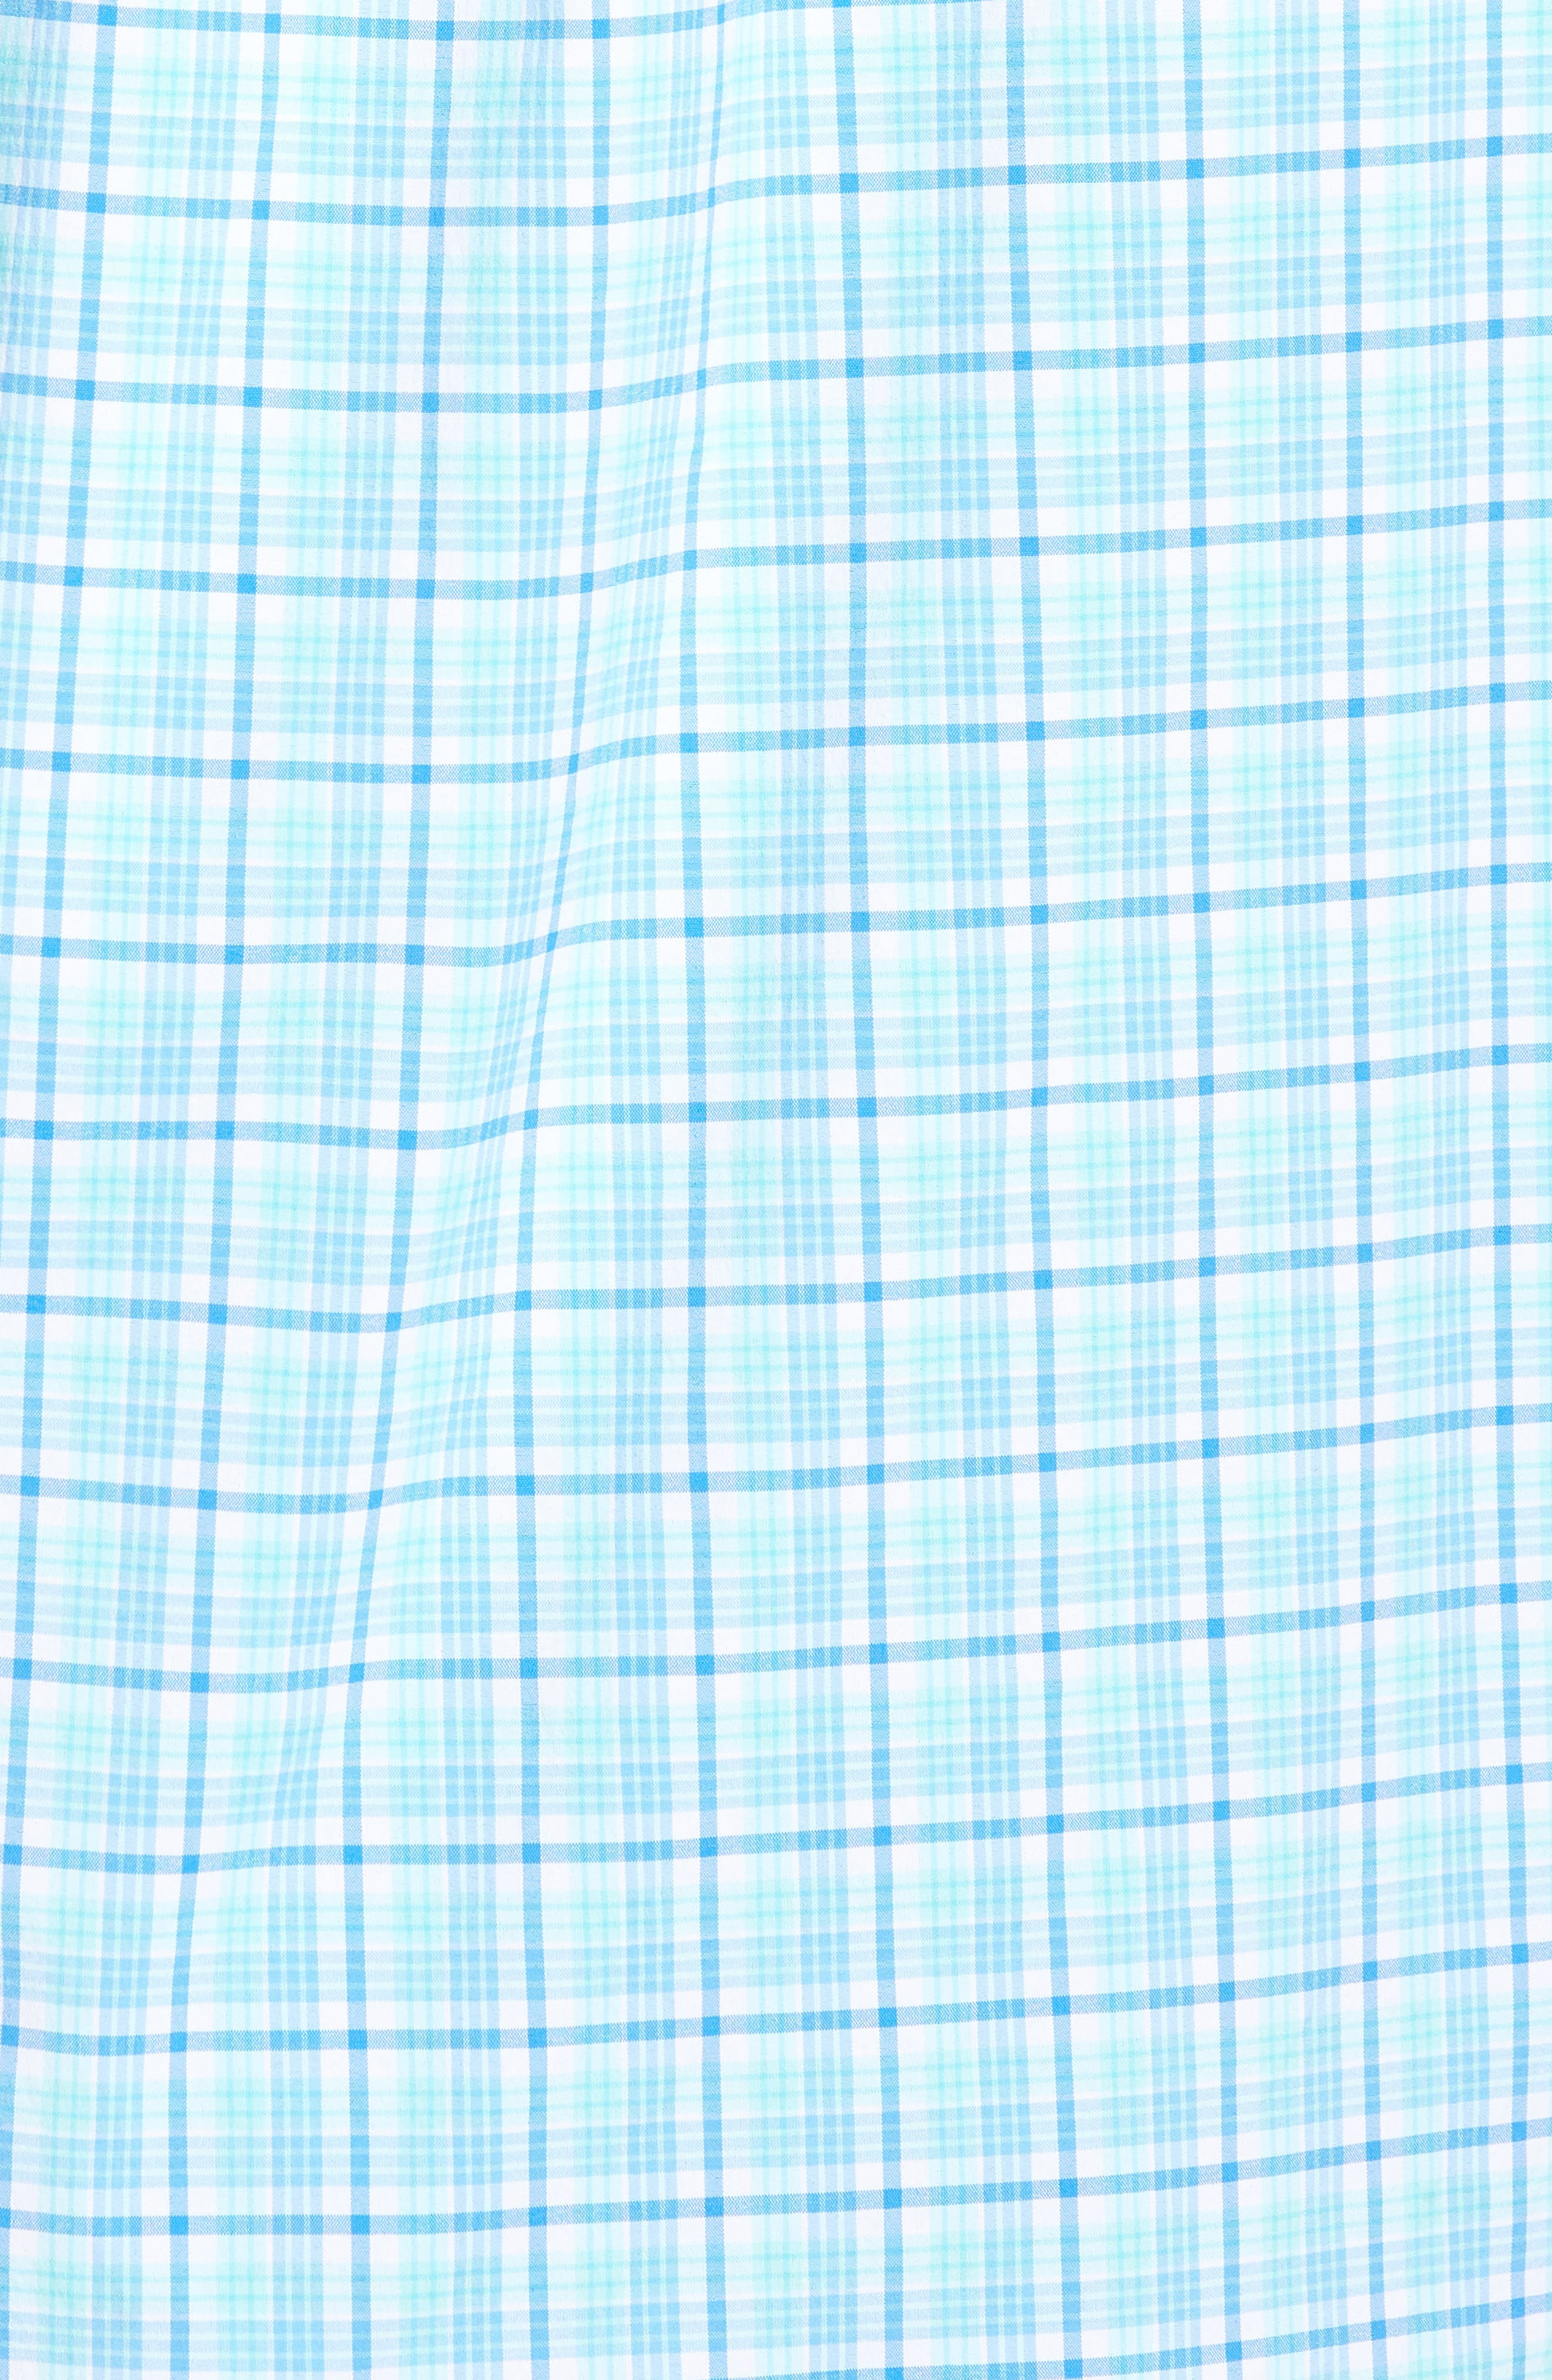 Tipsy Bar Classic Fit Stretch Plaid Sport Shirt,                             Alternate thumbnail 5, color,                             Turquoise